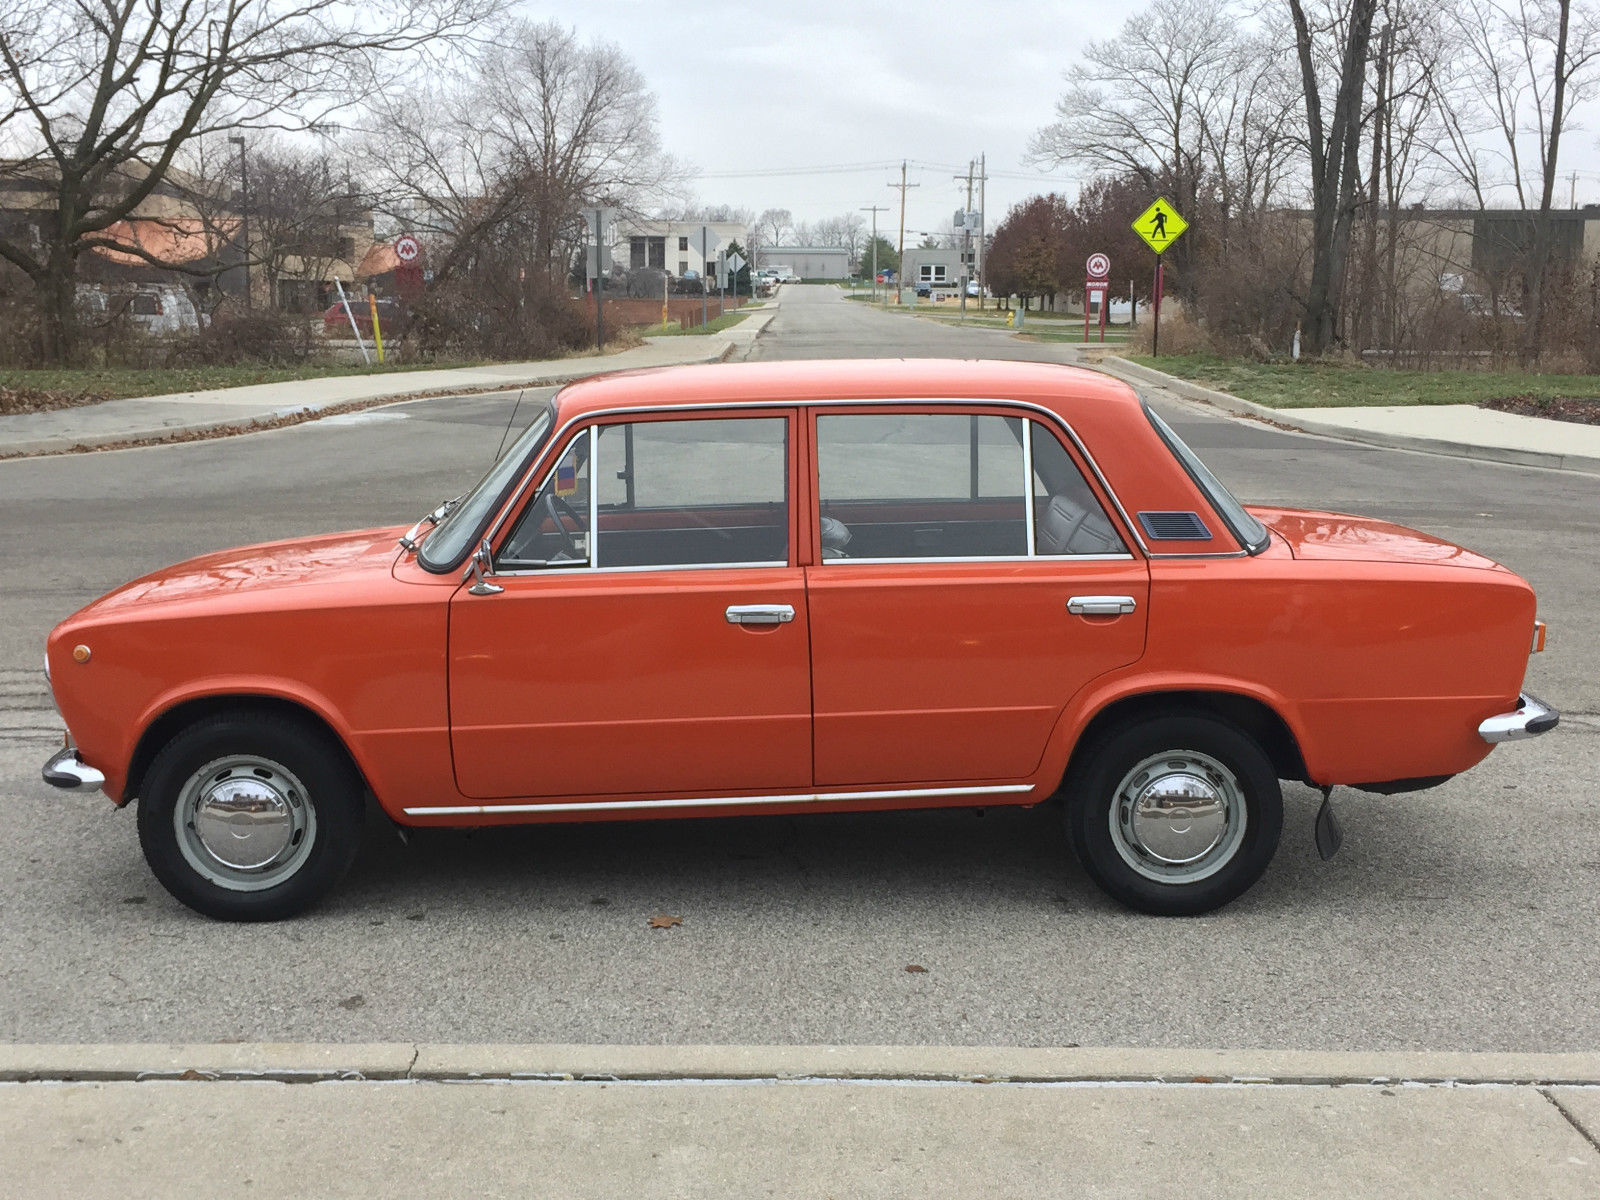 lada vaz 2101 russian soviet car in indiana very rare. Black Bedroom Furniture Sets. Home Design Ideas